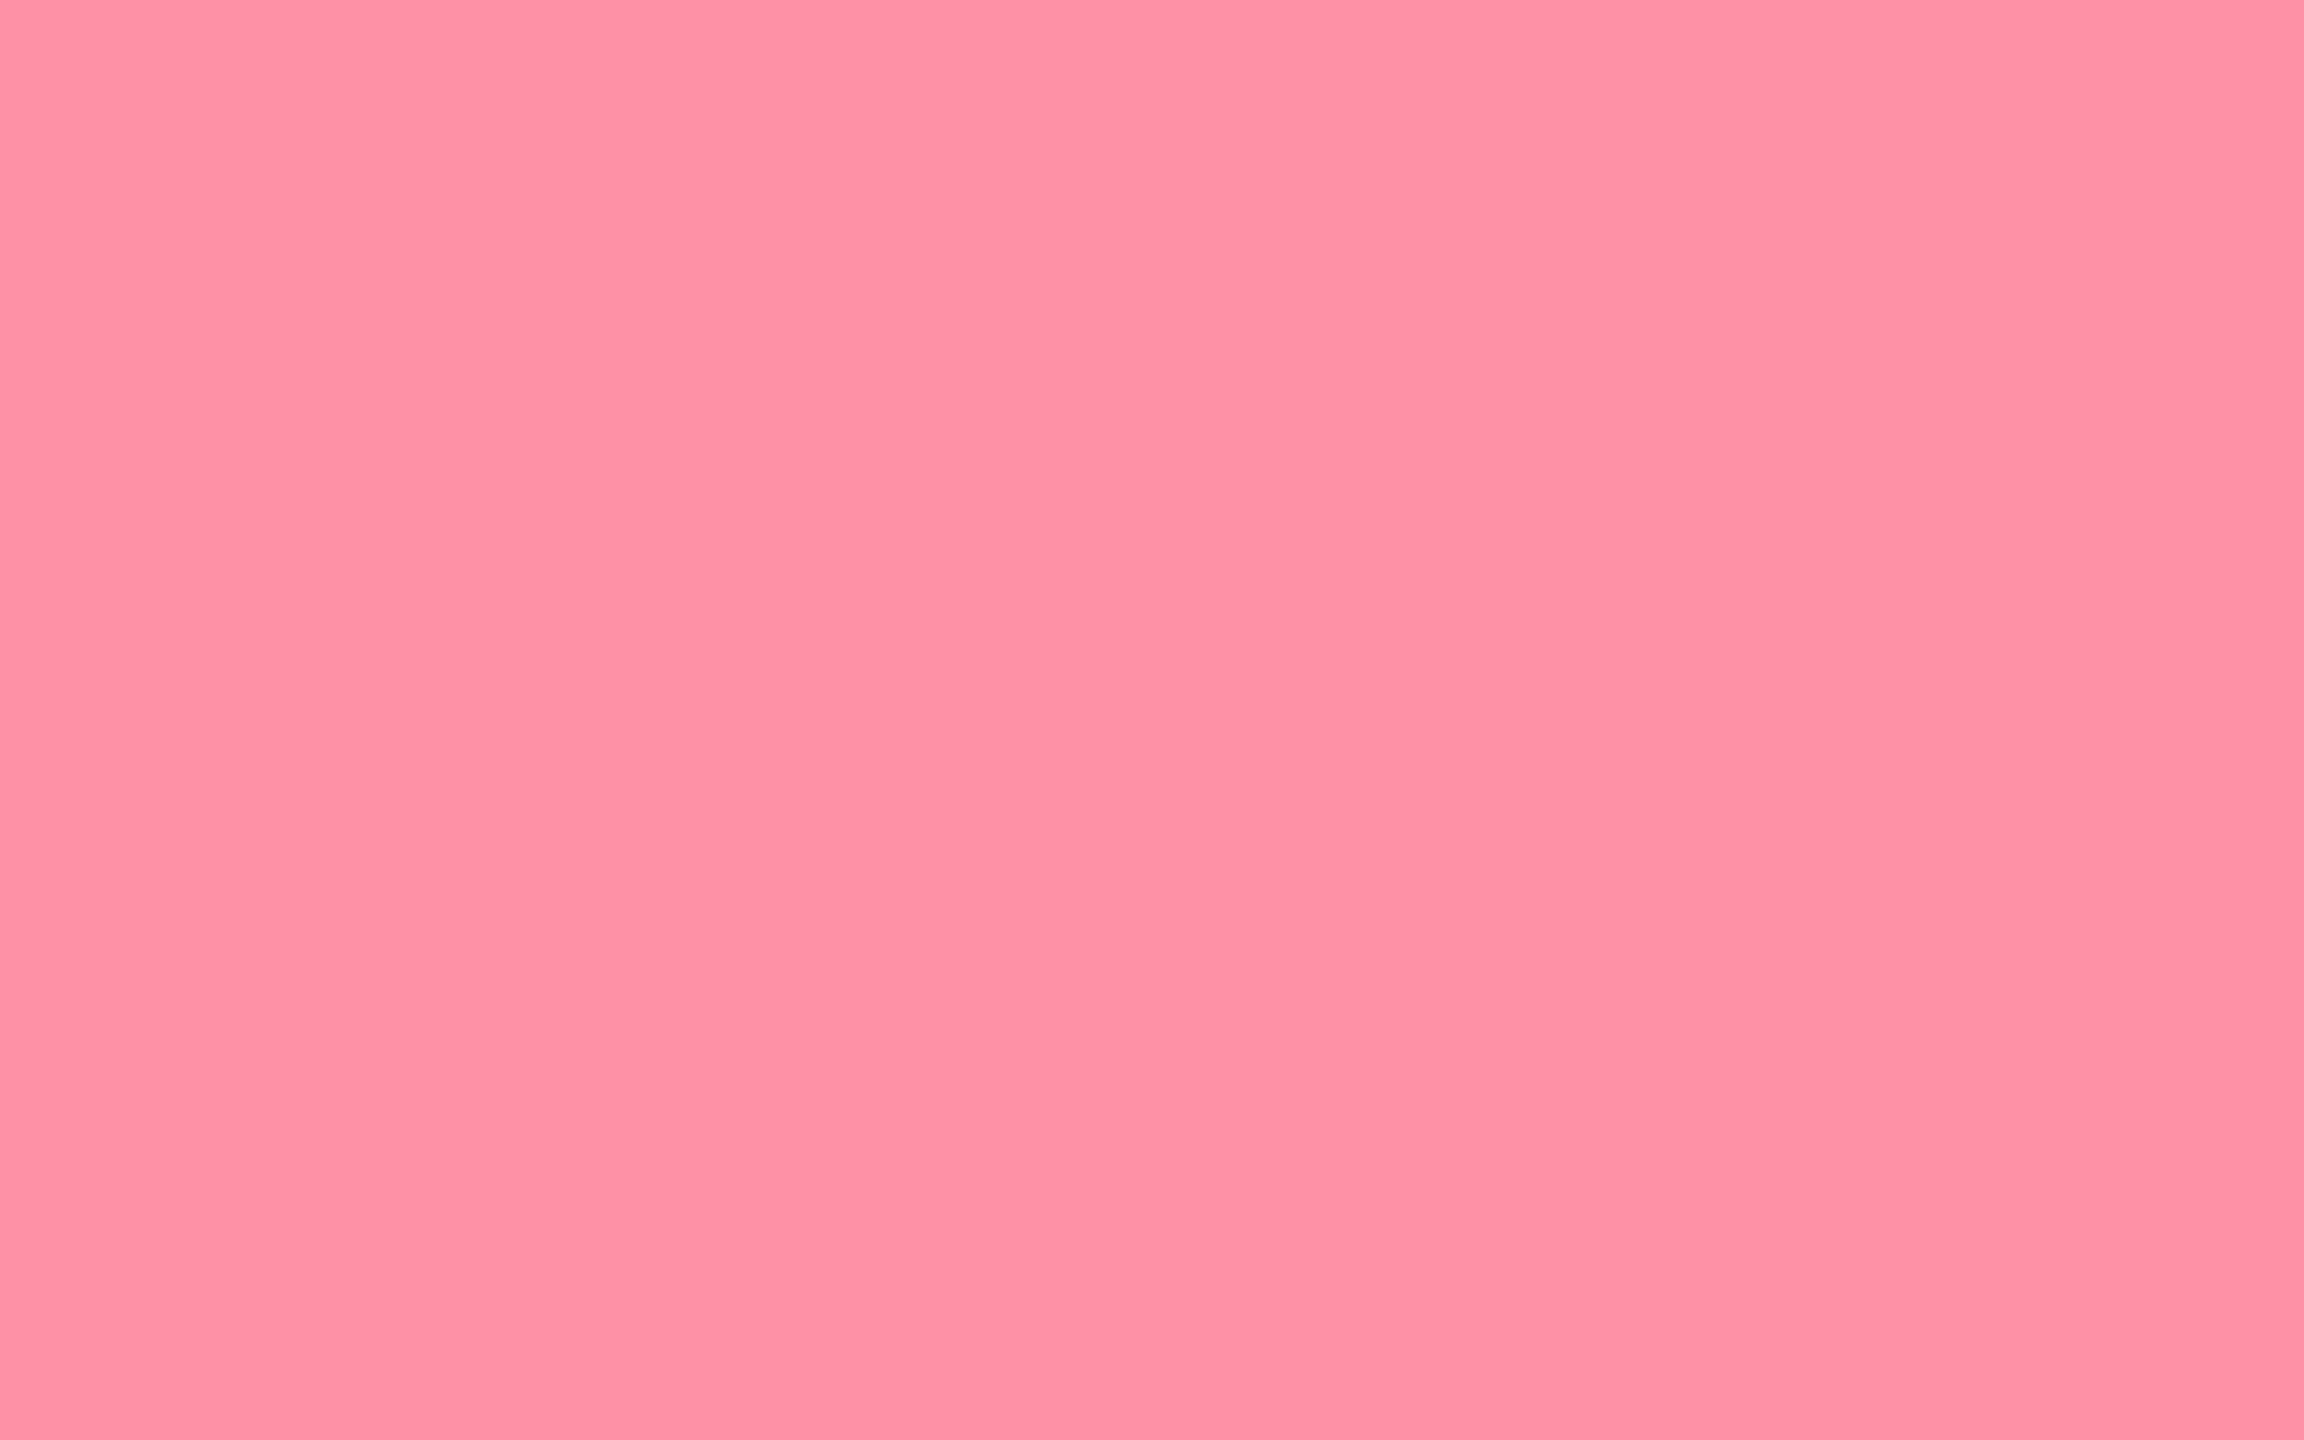 2304x1440 Salmon Pink Solid Color Background